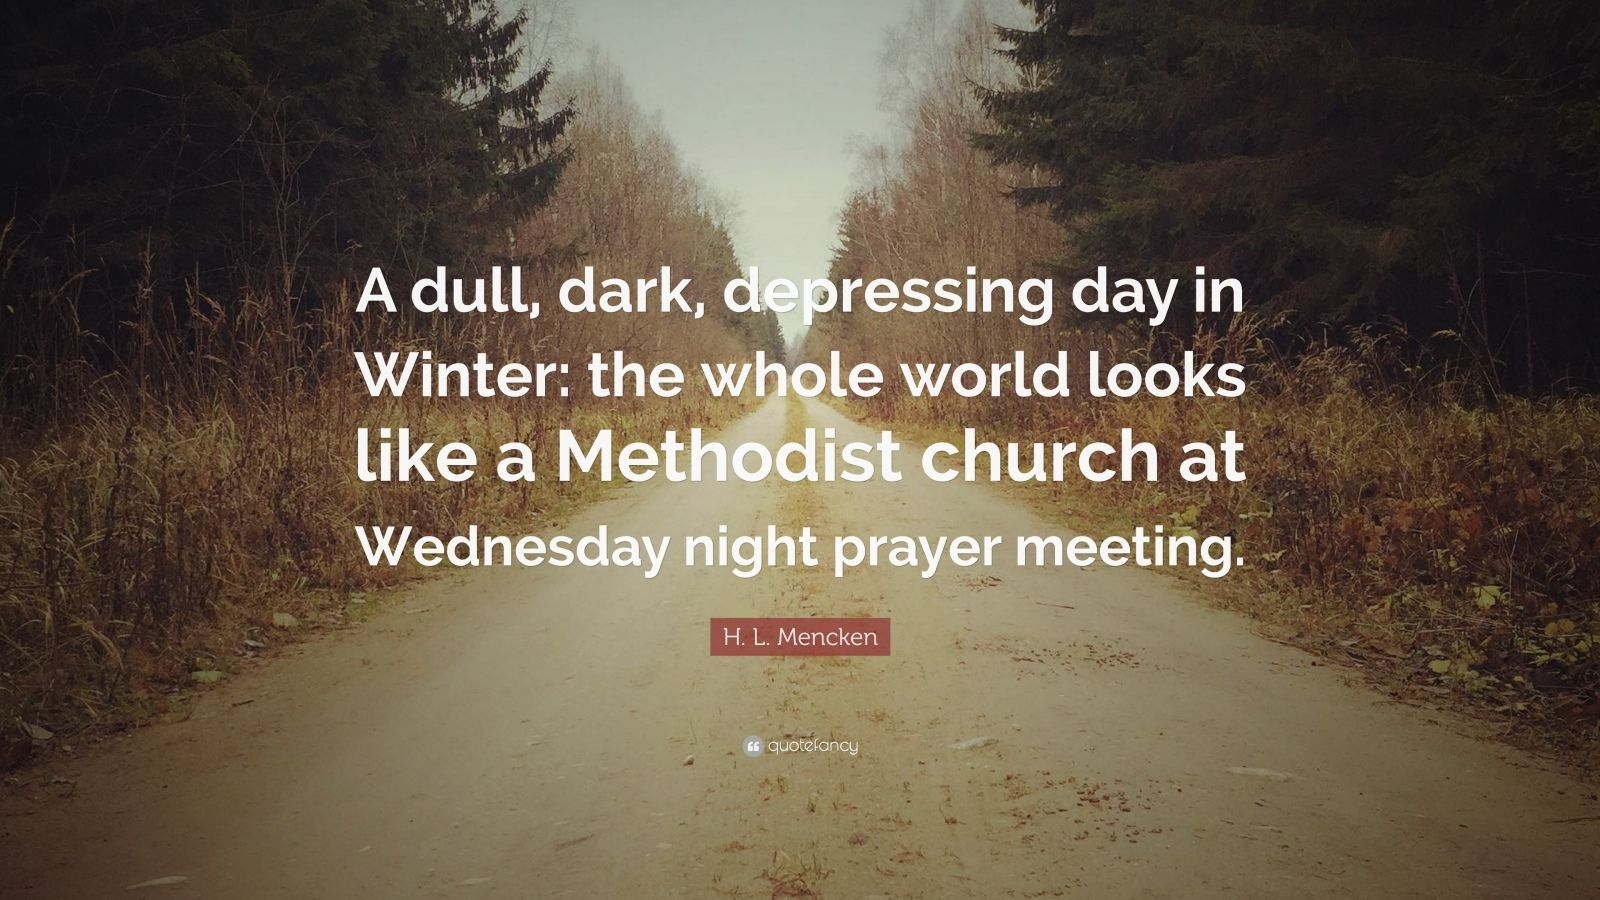 Image of: Meeting Wednesday Night Prayer Quotes Bing 20 Dark Depression Cutting Quotes Pictures And Ideas On Meta Networks